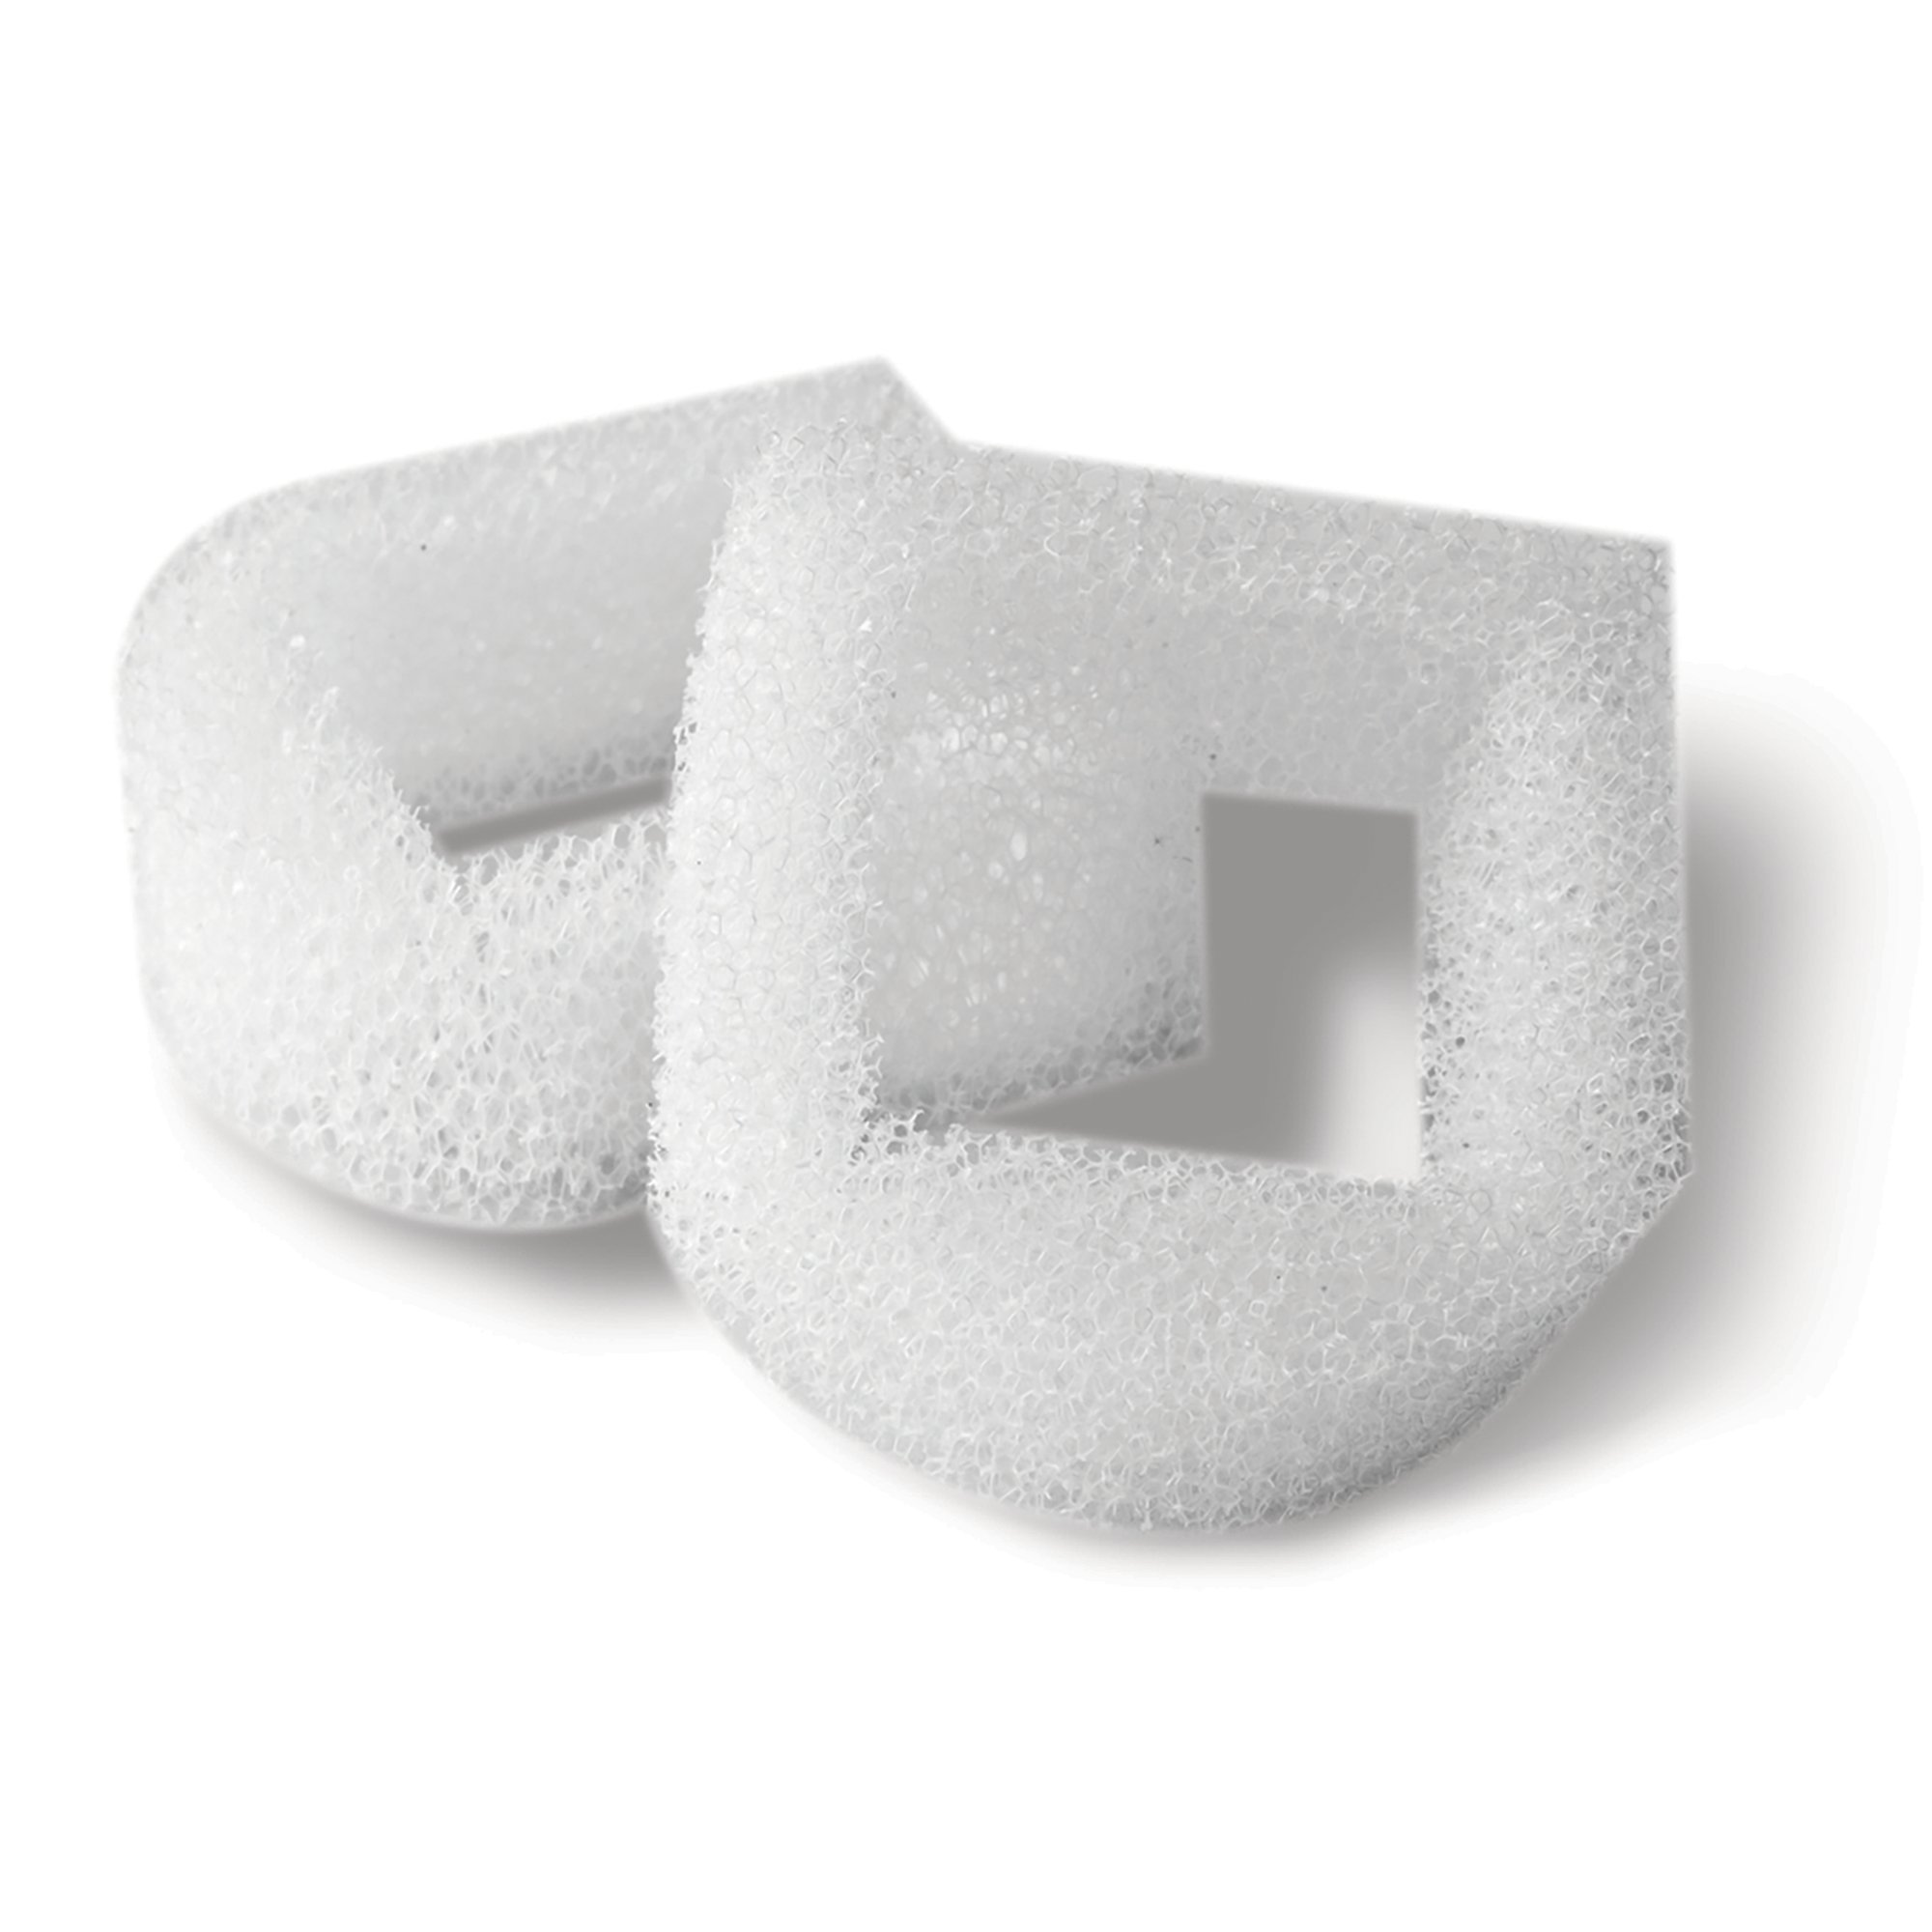 Drinkwell Pet Fountain Replacement Foam Filters   Petco   Tuggl